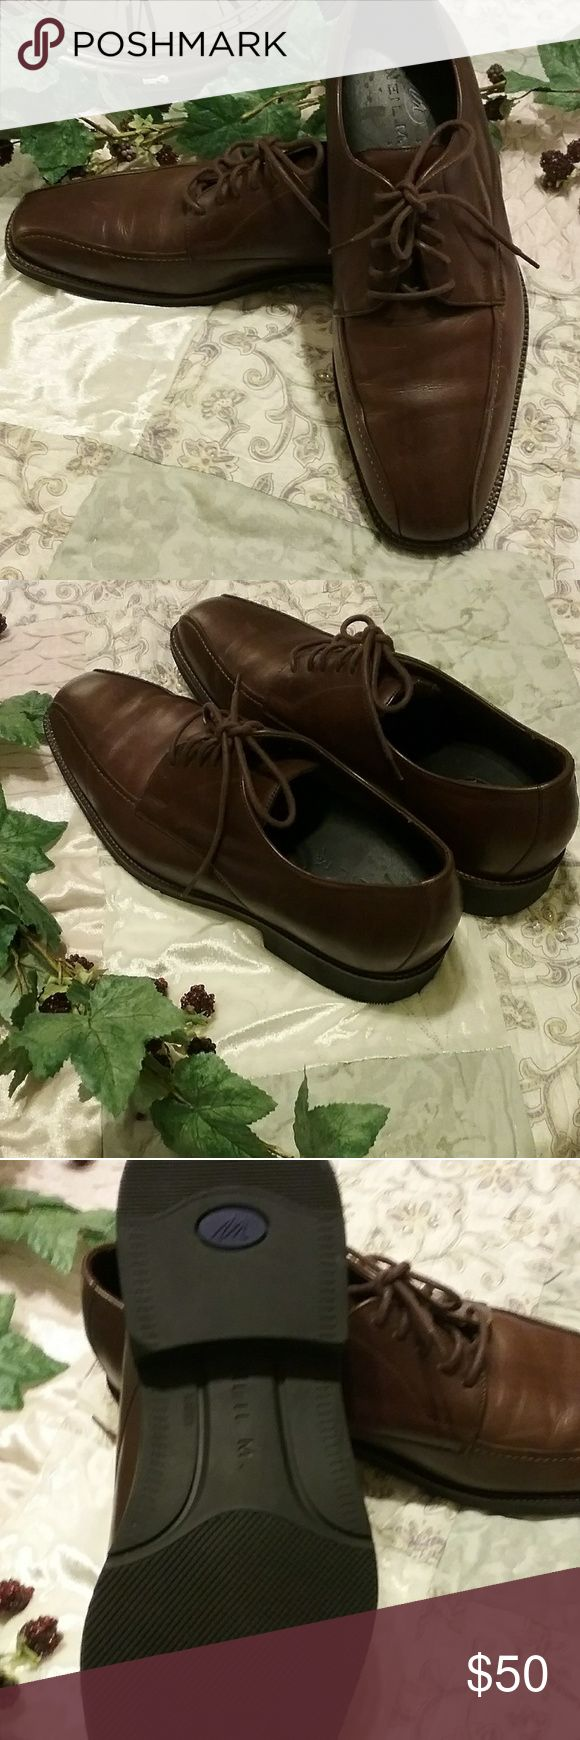 Neal M. Shoes for men          8 Handsomely designed for class!  Brown leather uppers, these are in great condition bearly worn. Neil M Shoes Loafers & Slip-Ons